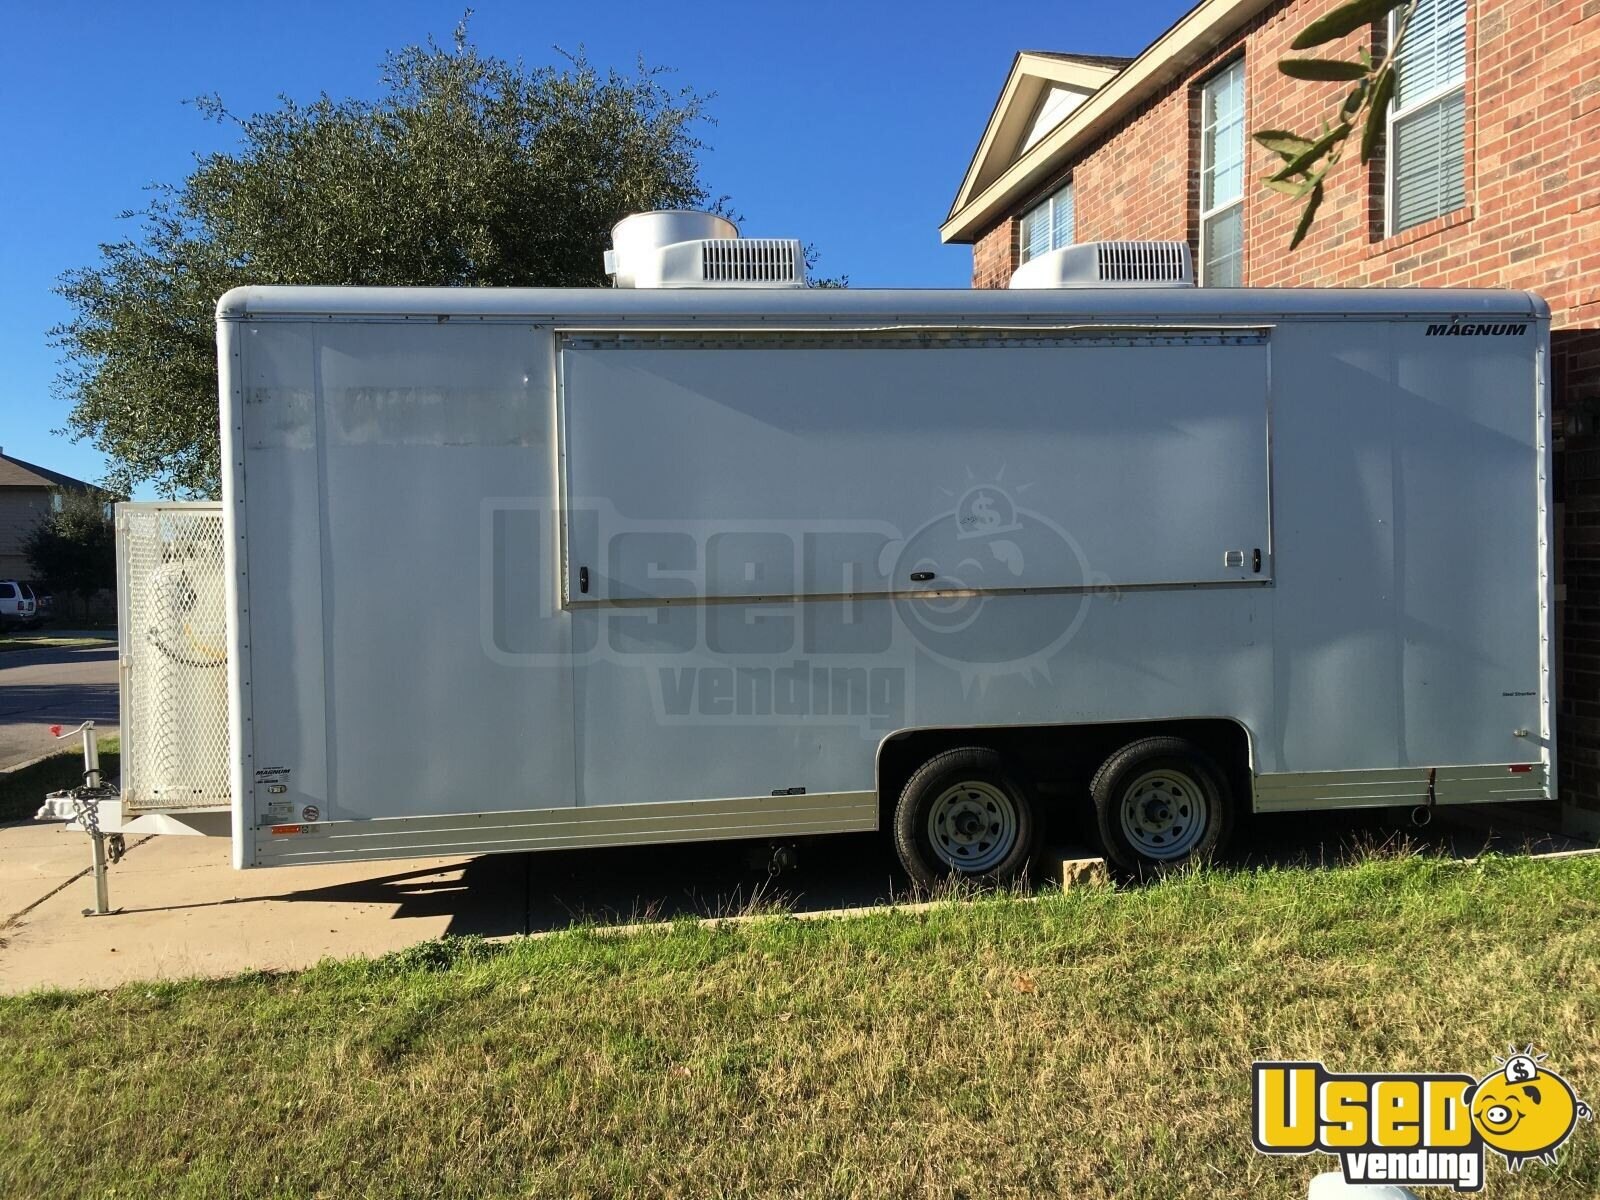 2009 Wells Cargo All-purpose Food Trailer Air Conditioning Texas for Sale - 2